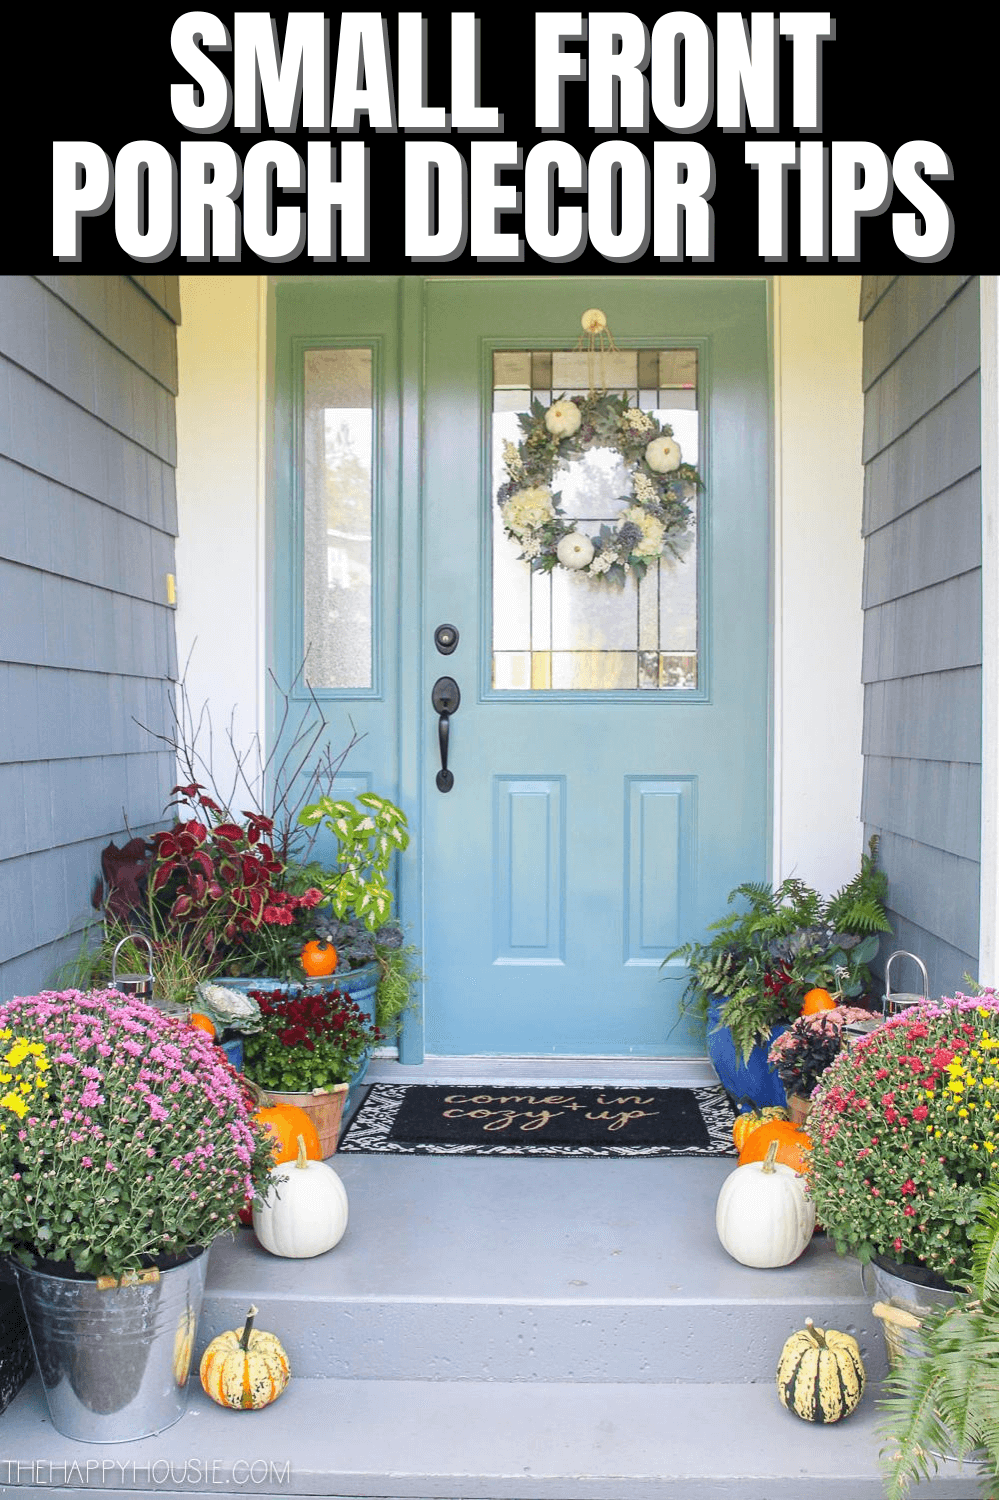 SMALL FRONT PORCH DECOR TIPS